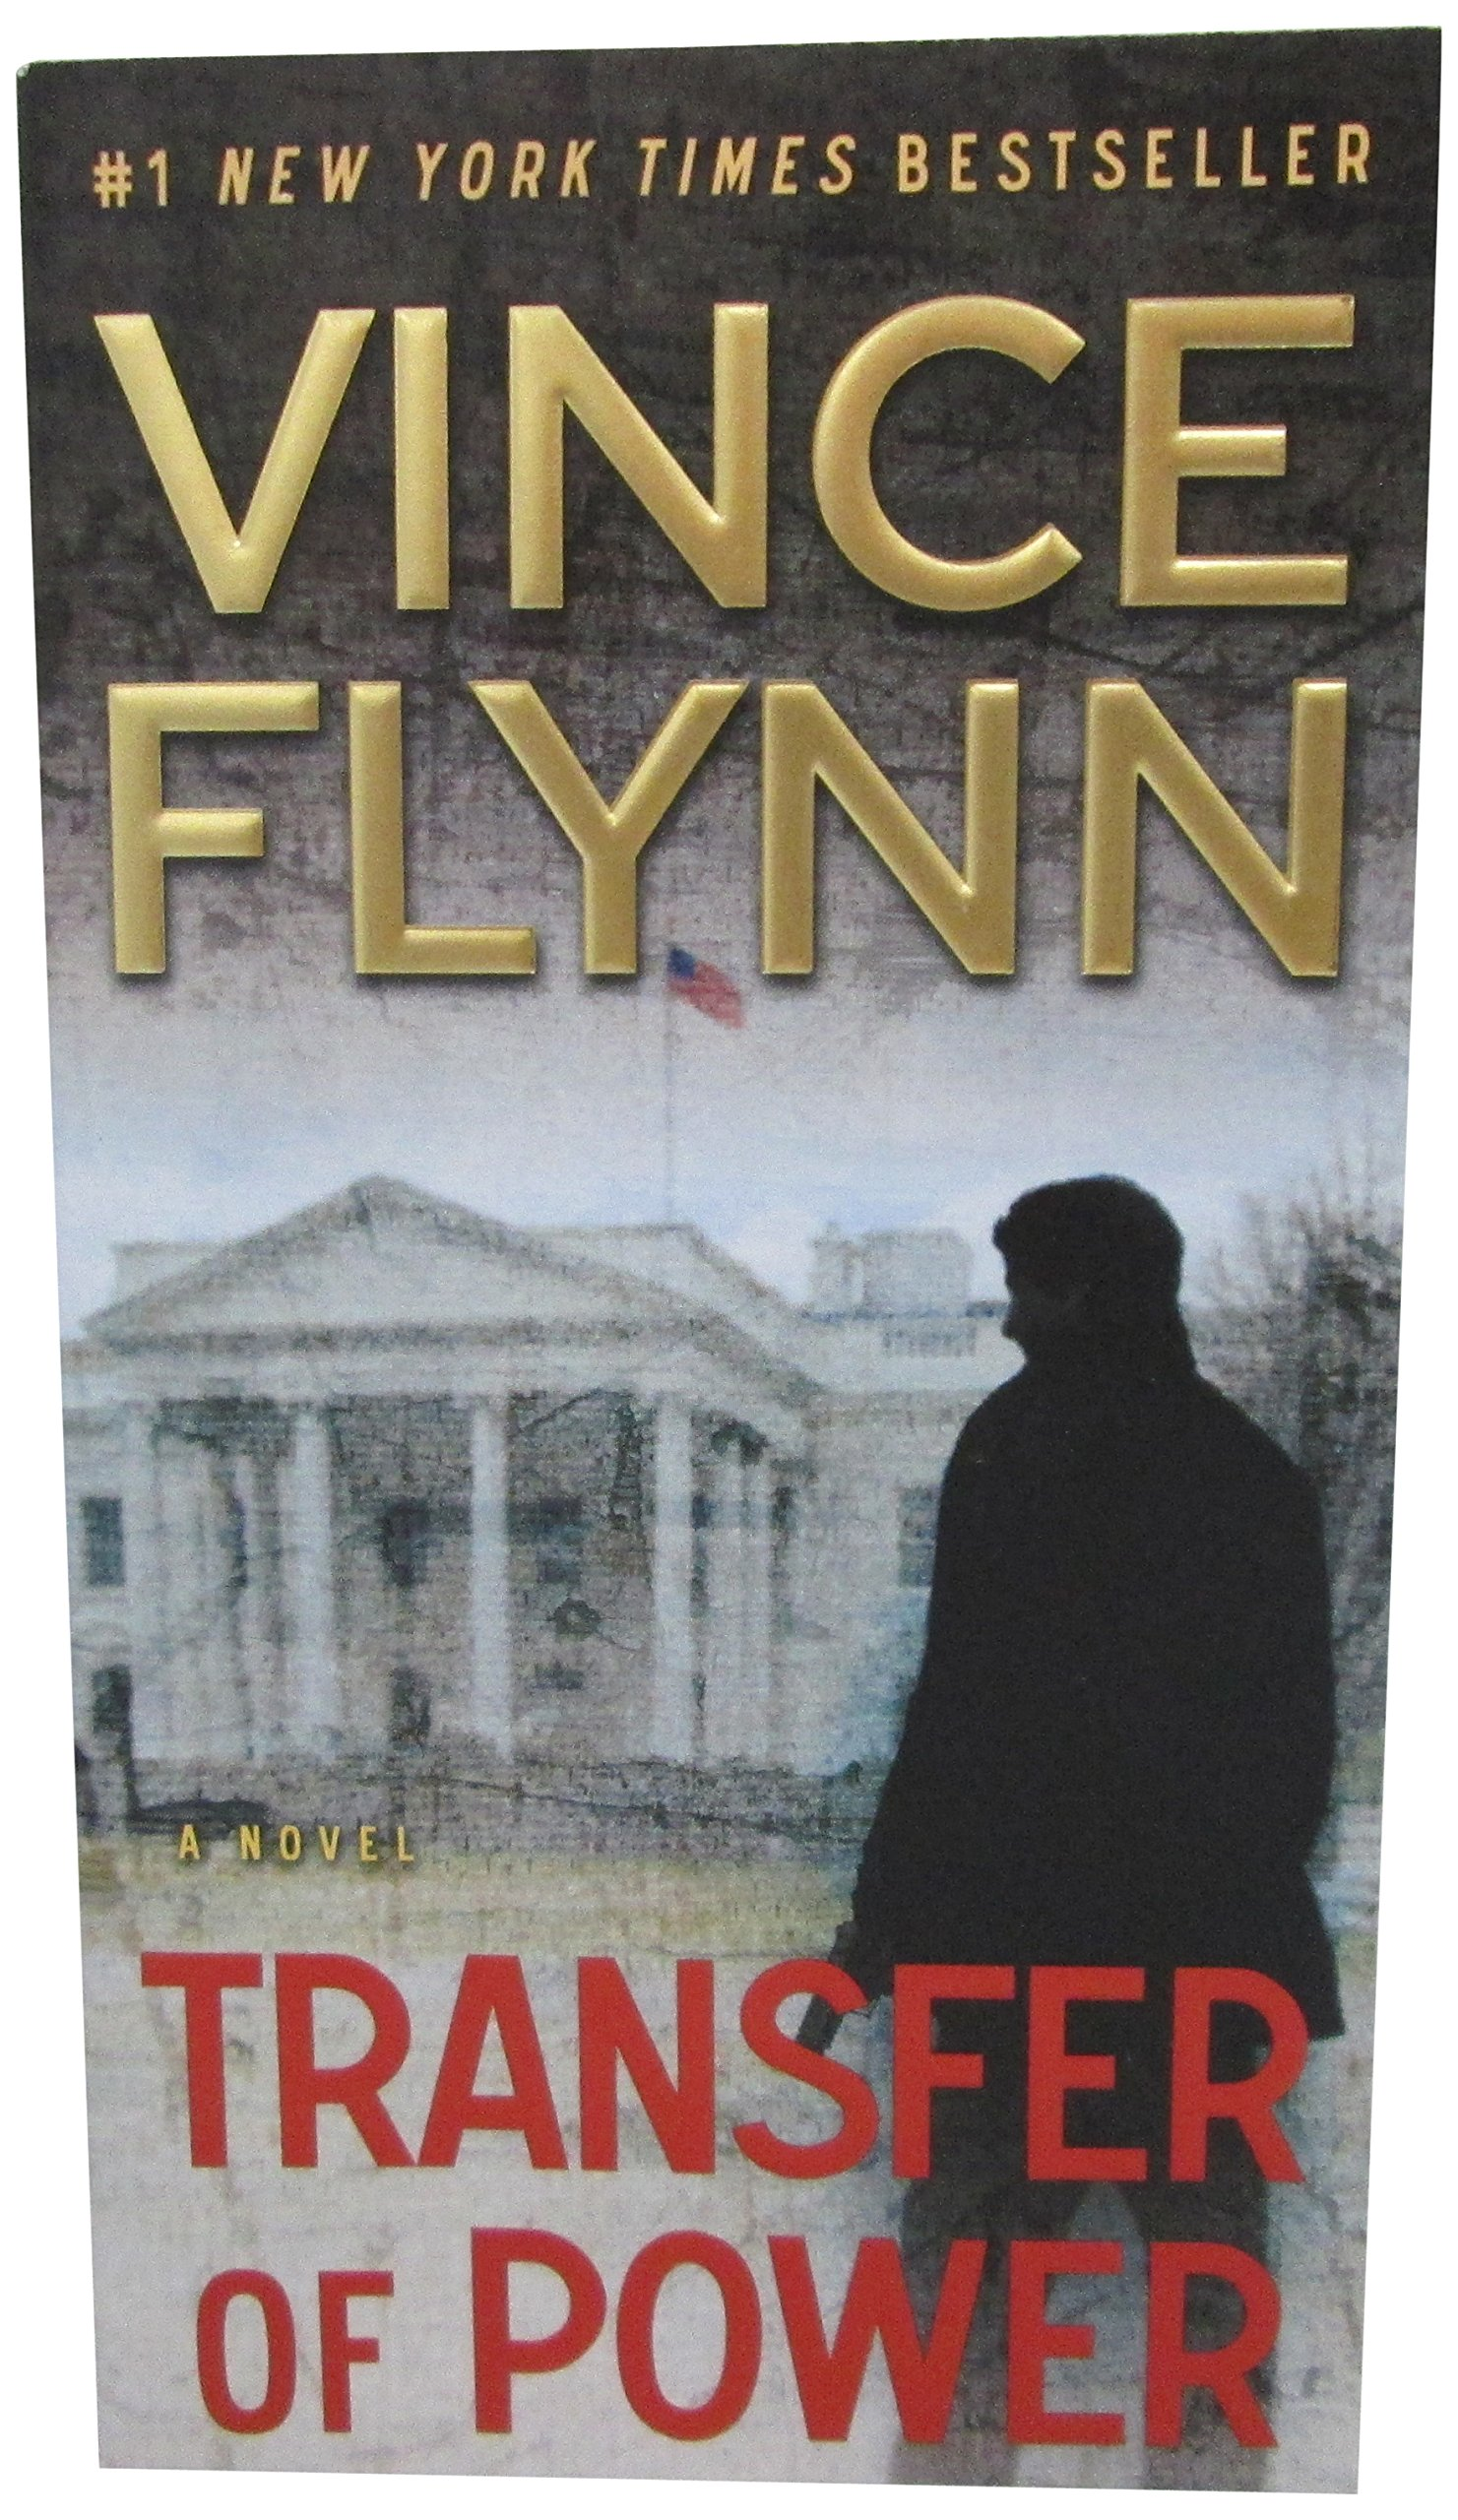 Transfer of power a mitch rapp novel vince flynn 9781439197035 transfer of power a mitch rapp novel vince flynn 9781439197035 amazon books fandeluxe Choice Image